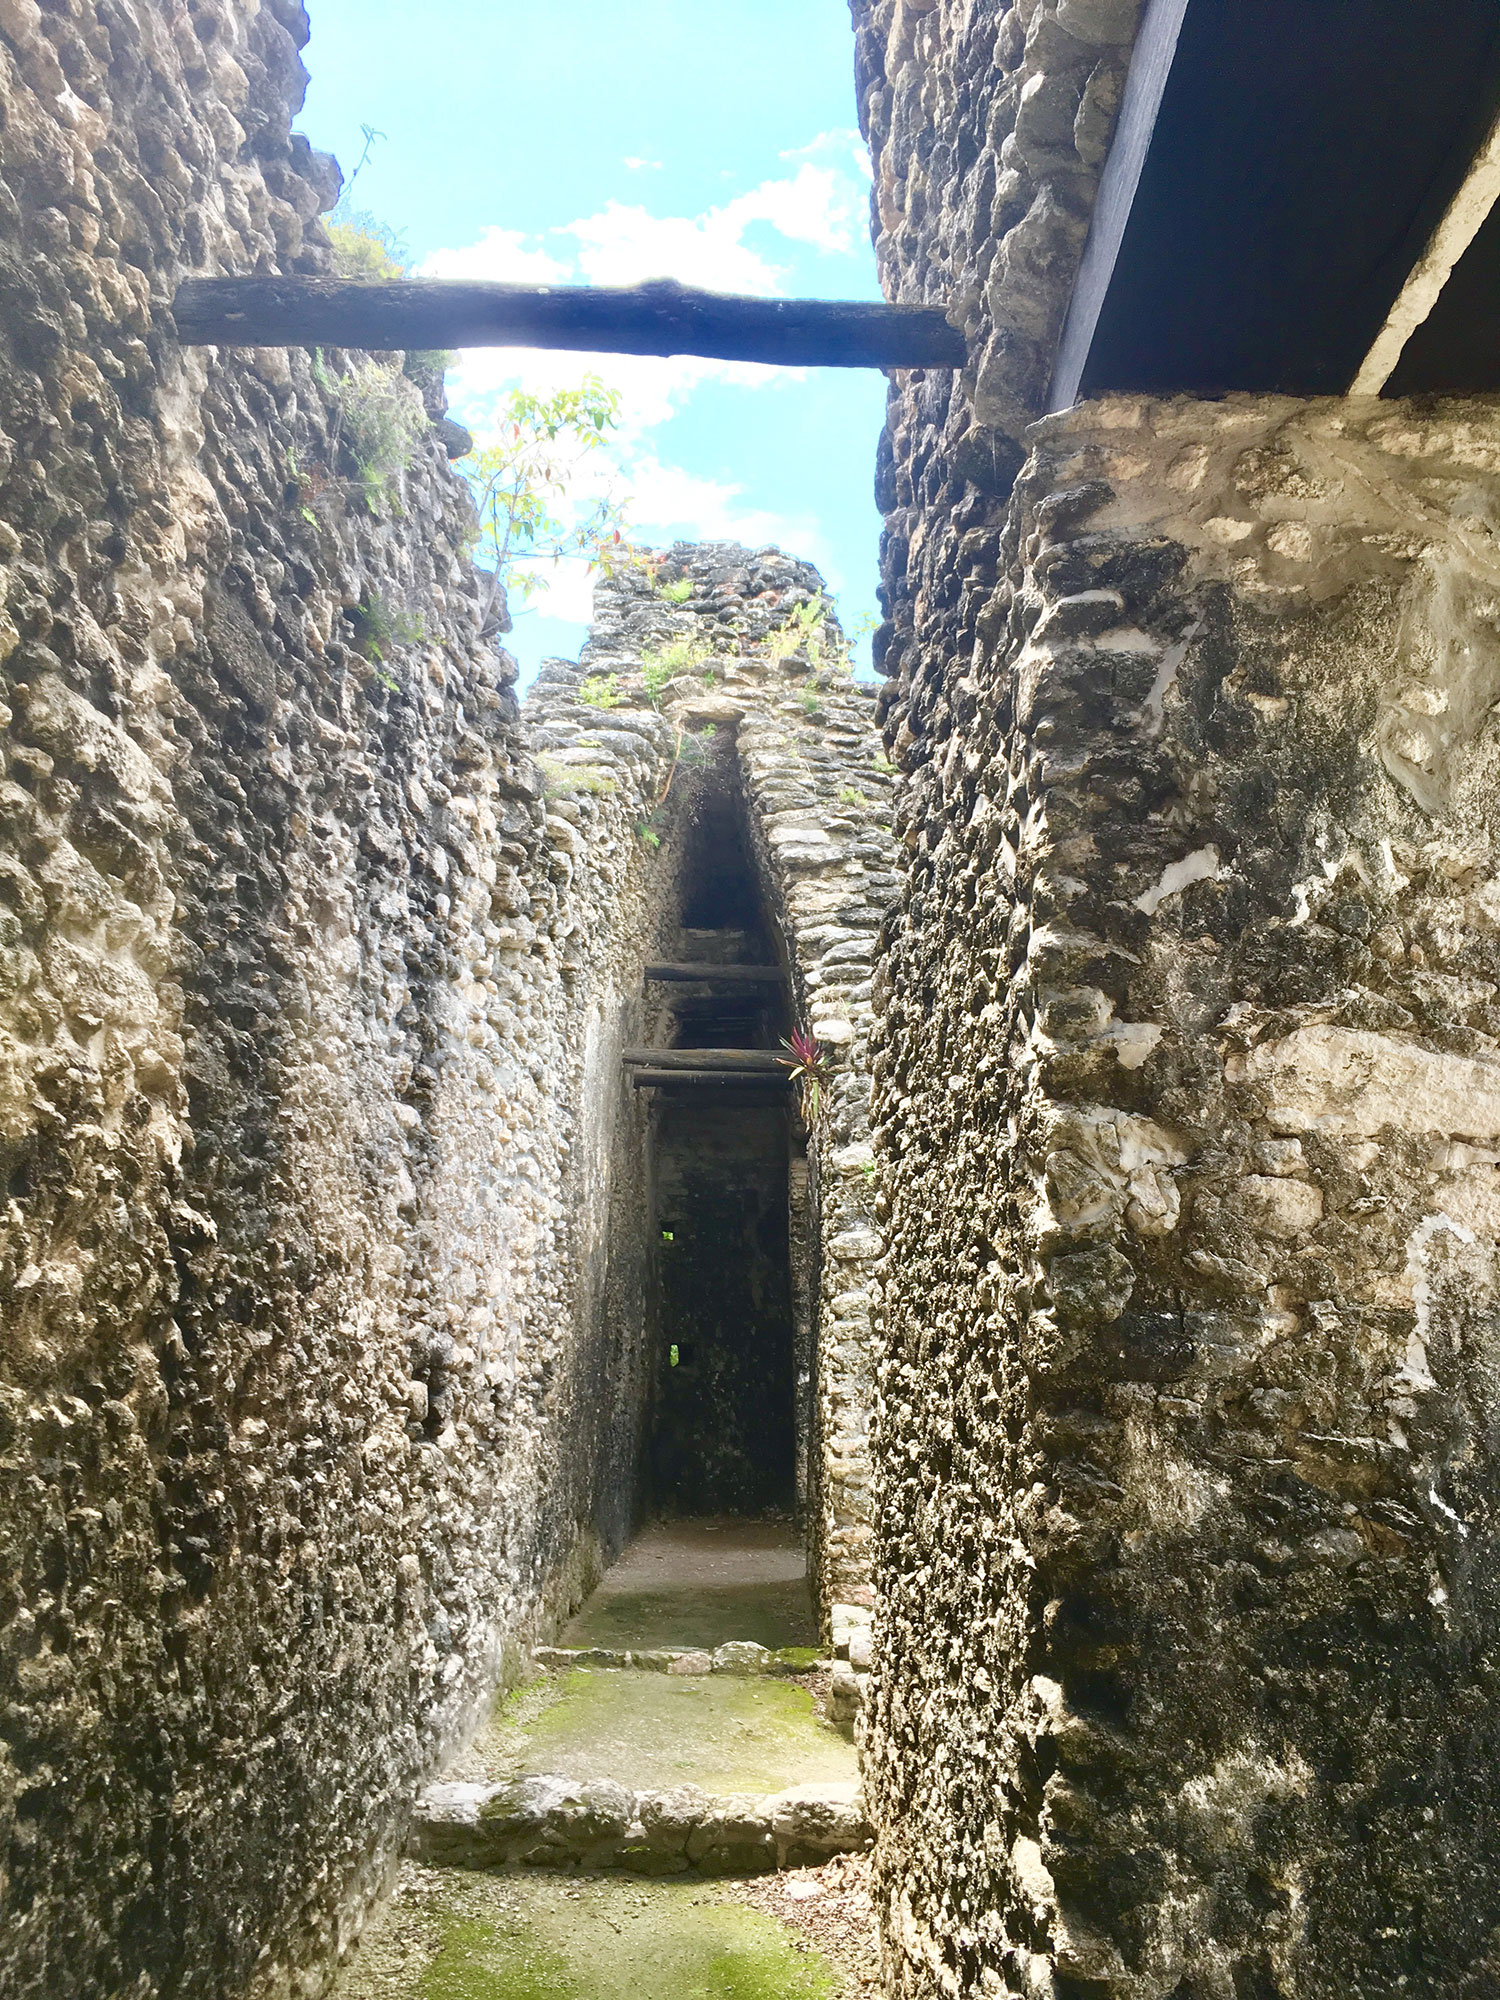 Vaulted rooms….